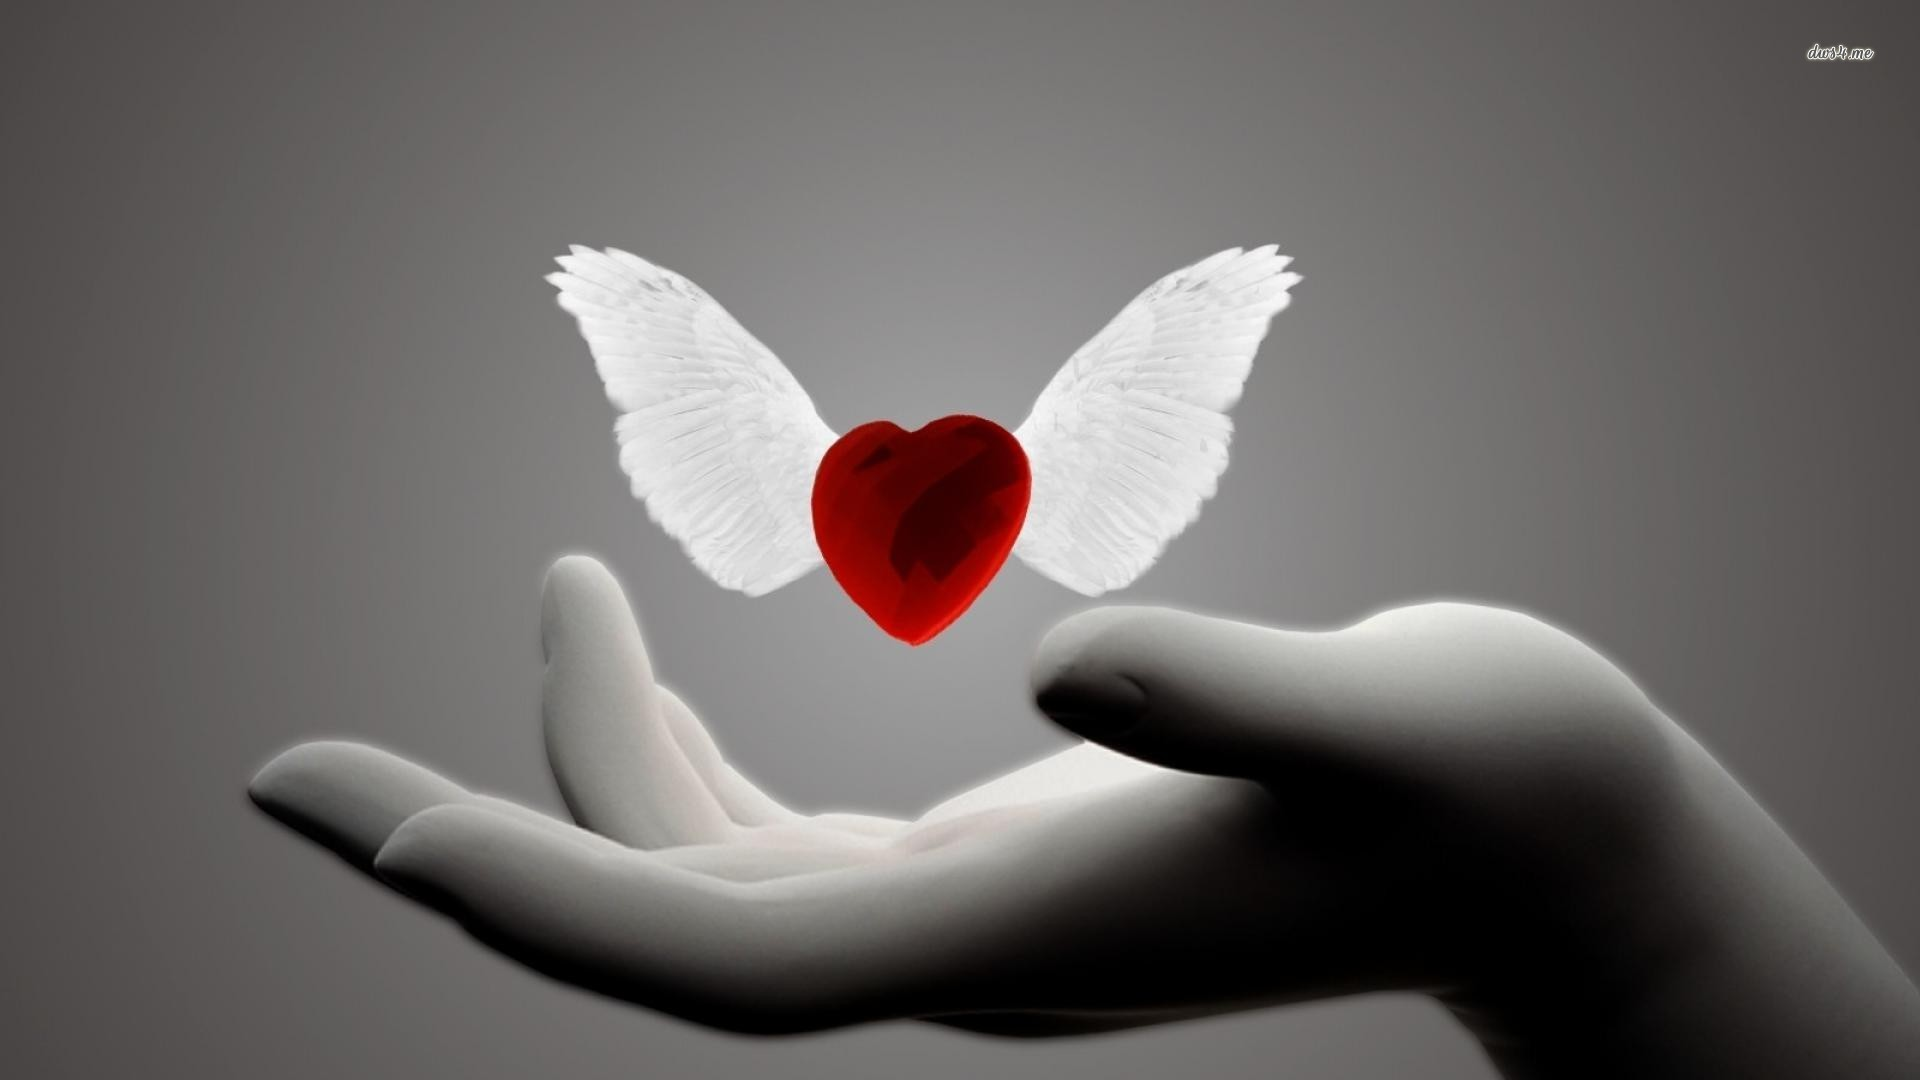 Heart with wings wallpaper 1280x800 Heart with wings wallpaper 1920x1080